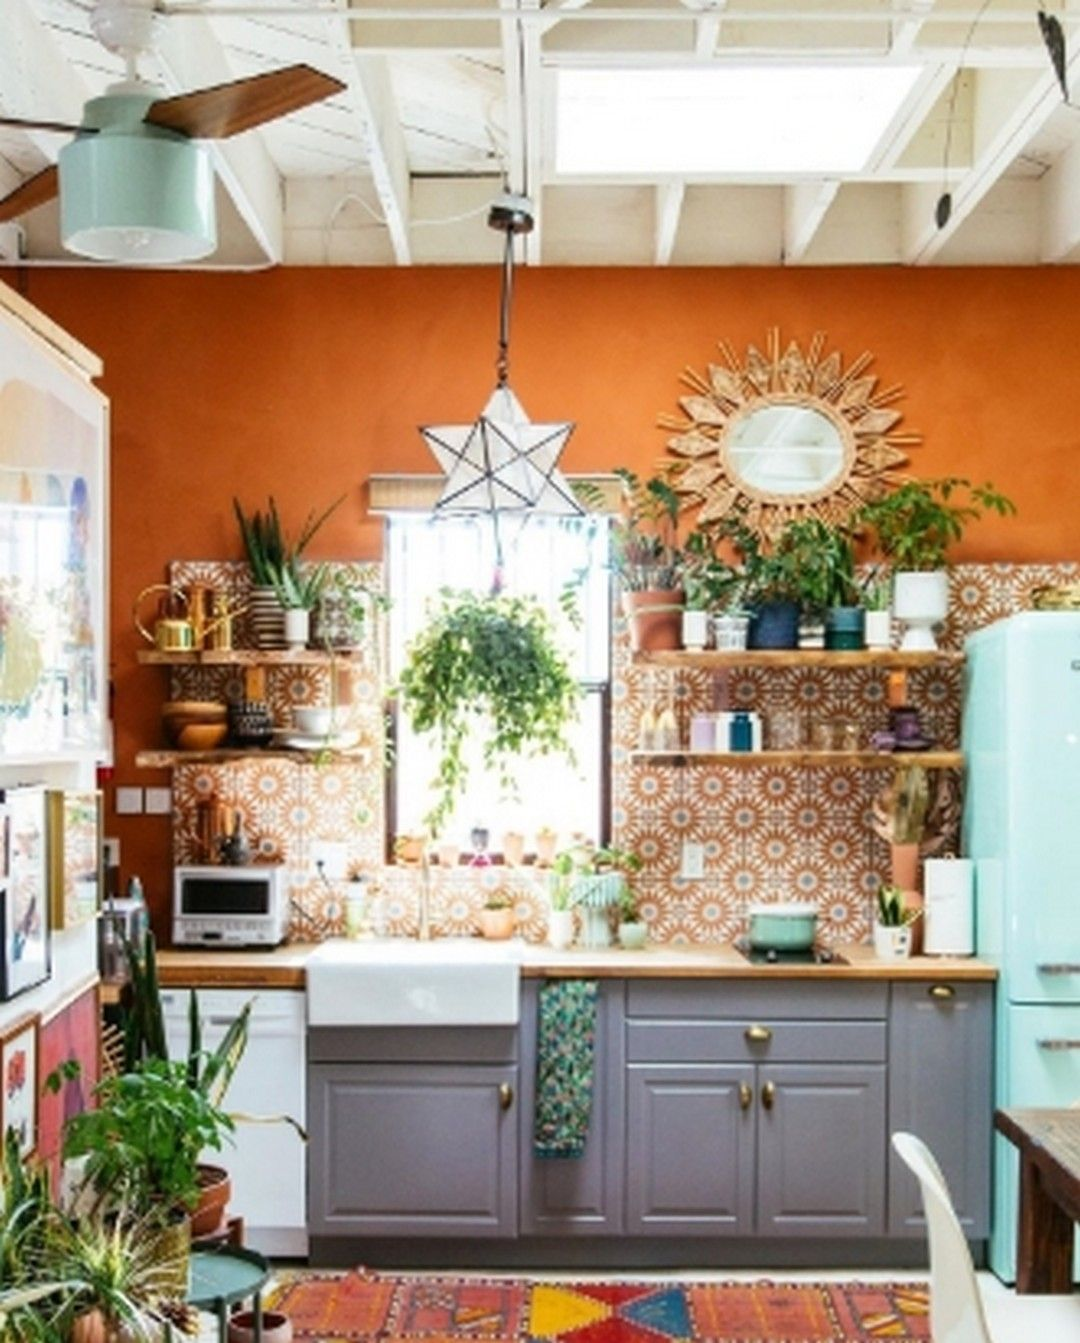 8 unique and colorful bohemian kitchen design ideas in 2020 bohemian kitchen bohemian style on boho chic interior design kitchen id=75348